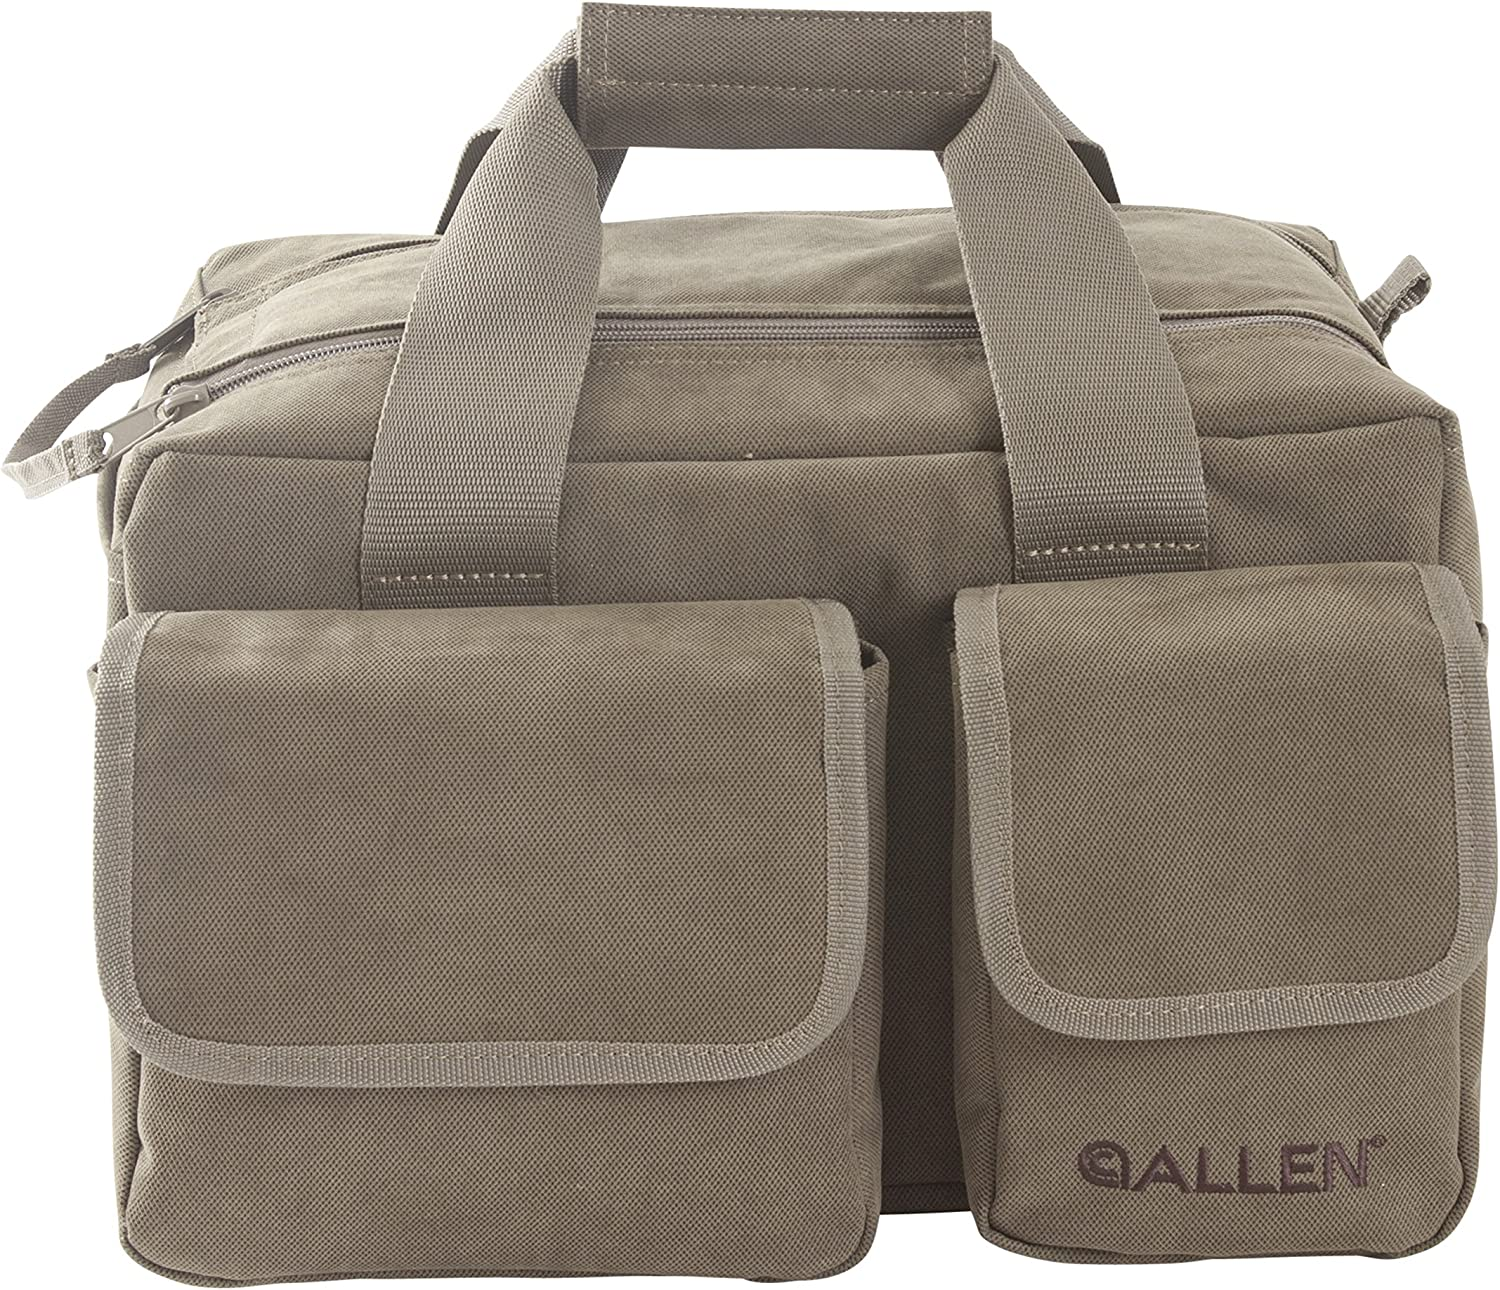 Allen Select Canvas Range Bag with 2 Pistol Rugs